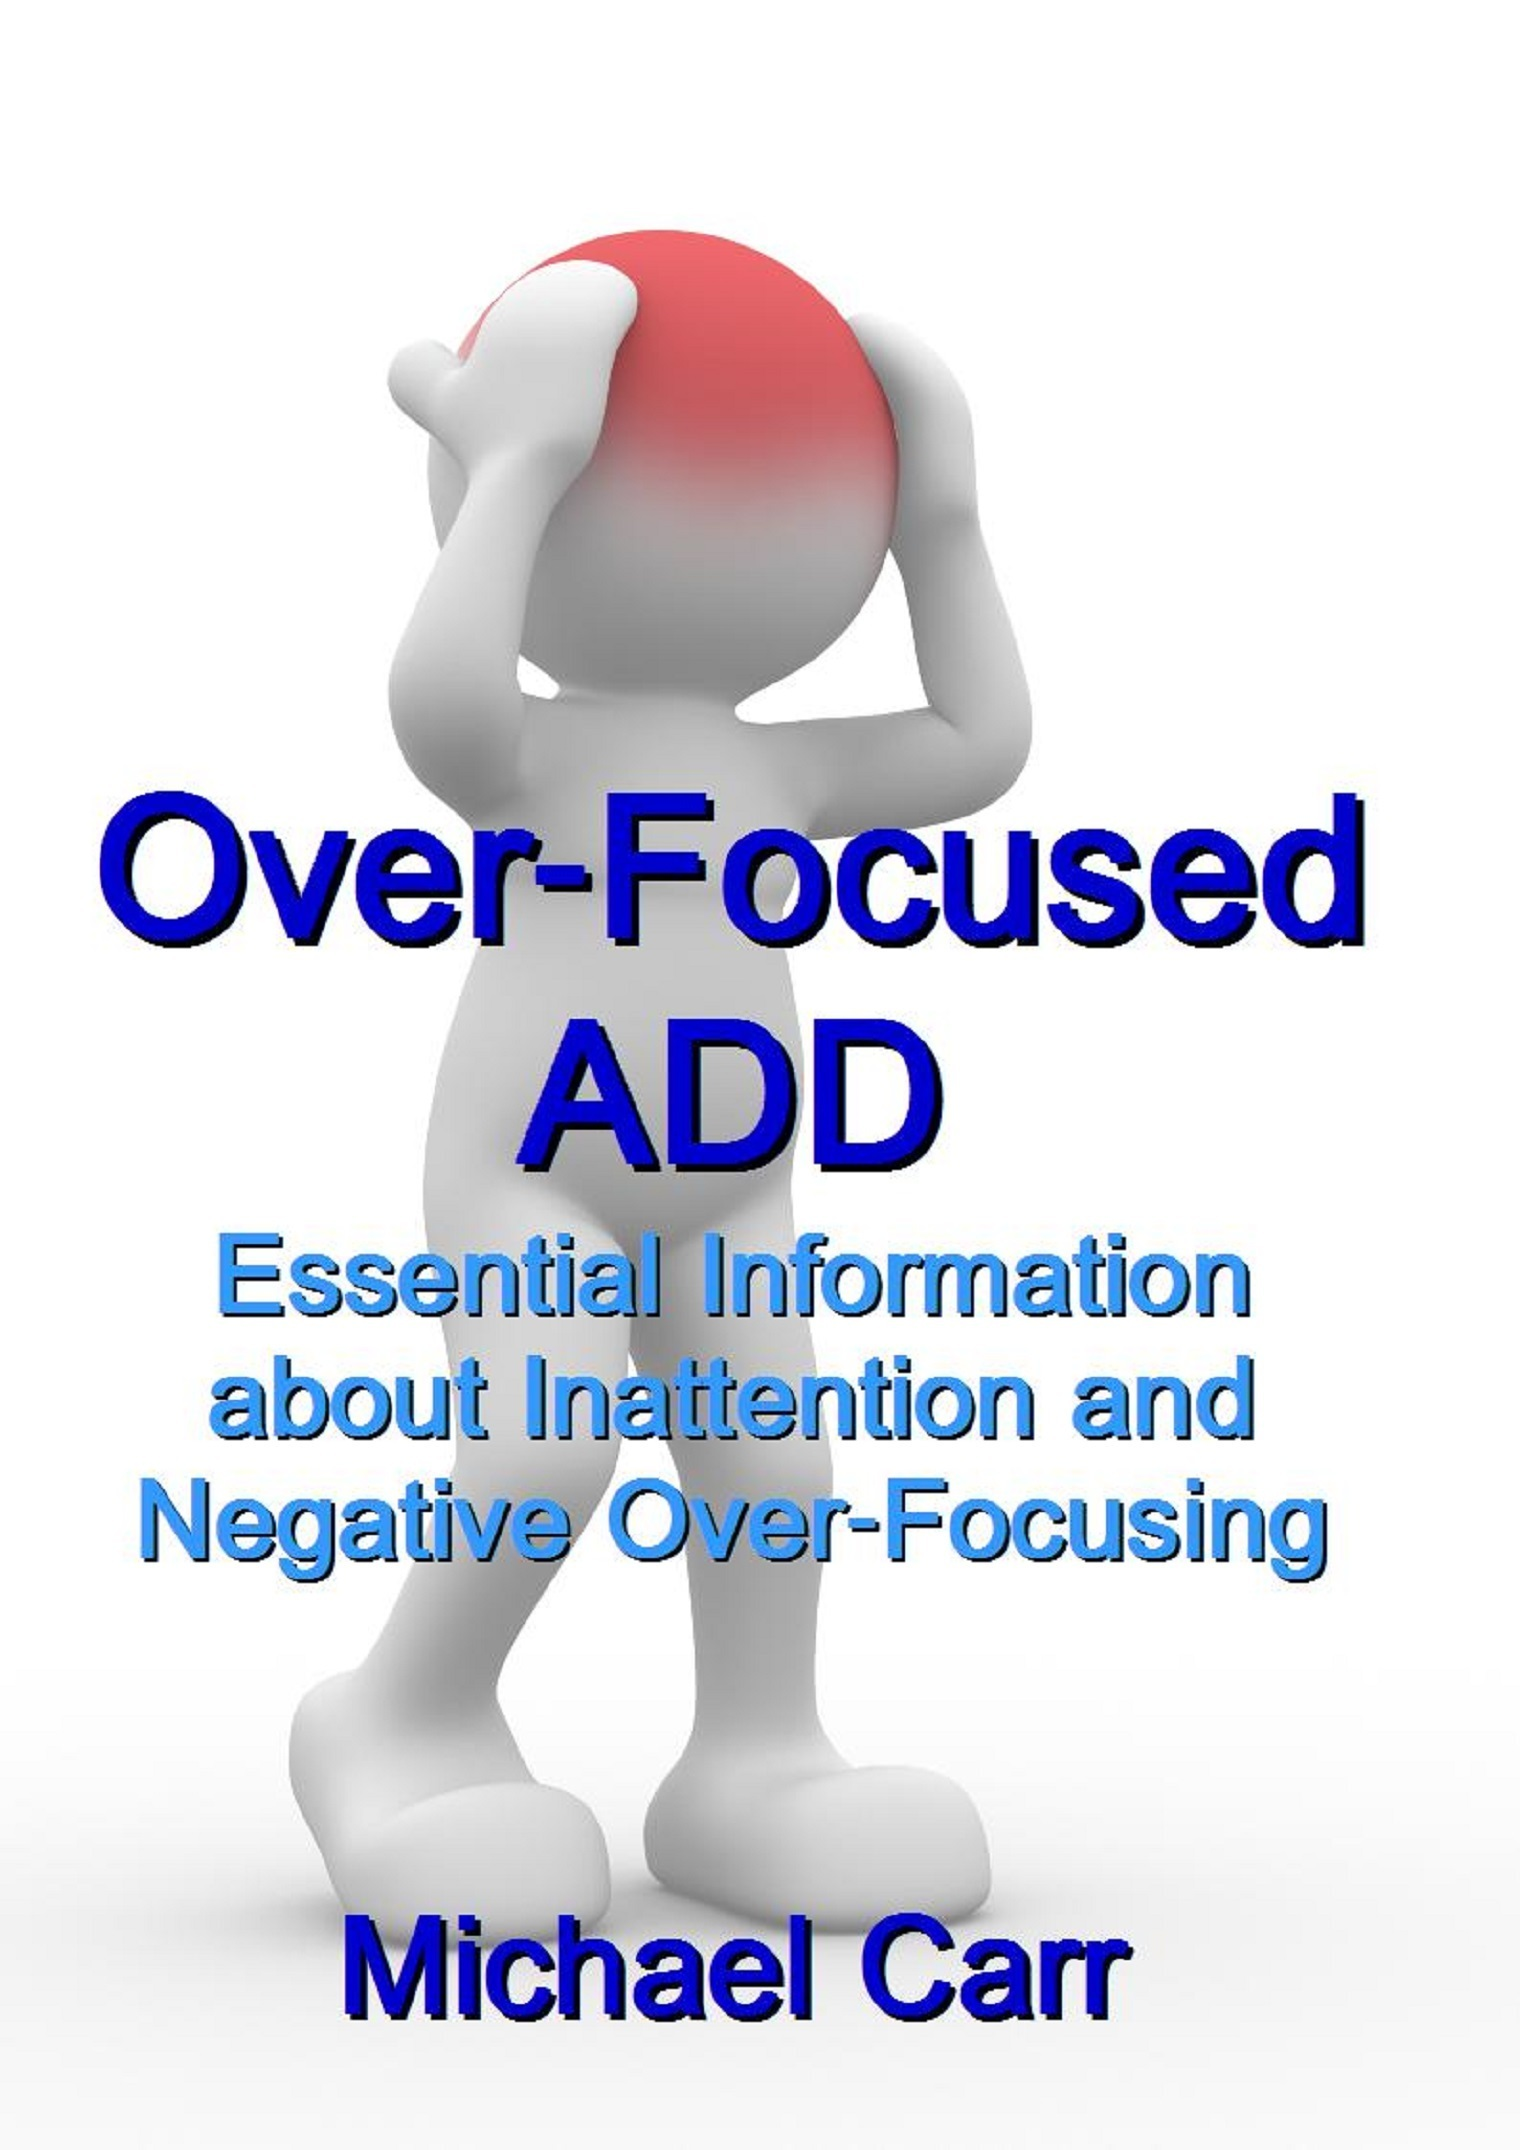 Over-Focused ADD: Essential Information about Inattention and Negative Over-Focusing  by  Michael Carr